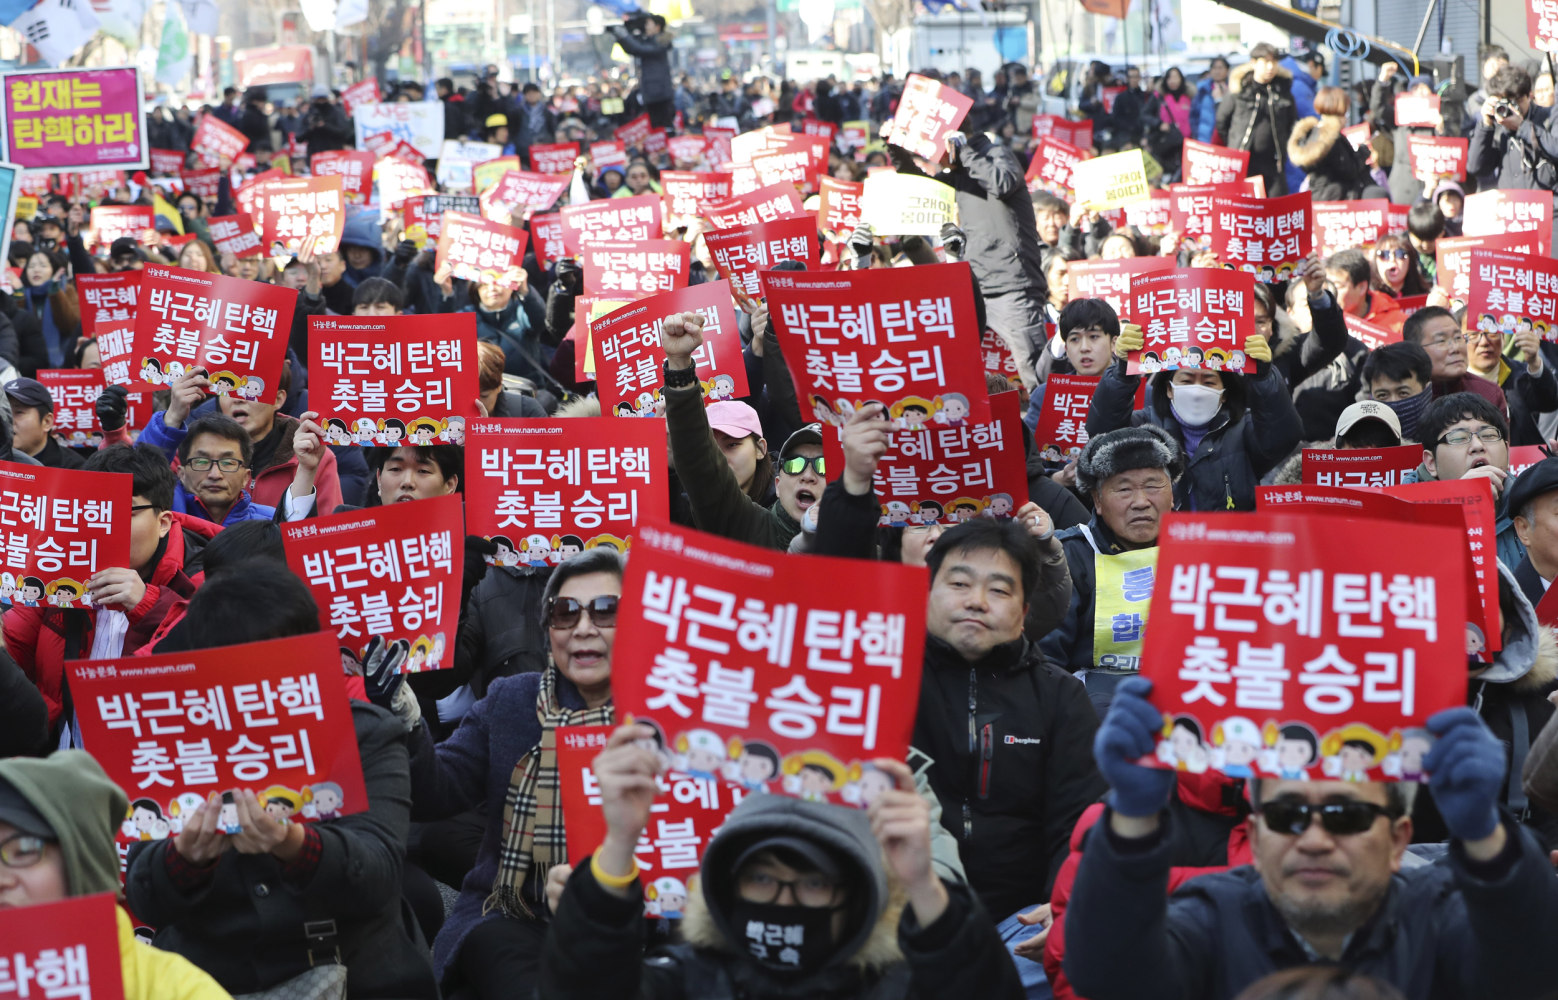 Acting S.Korean president asks to respect court's ruling on impeachment